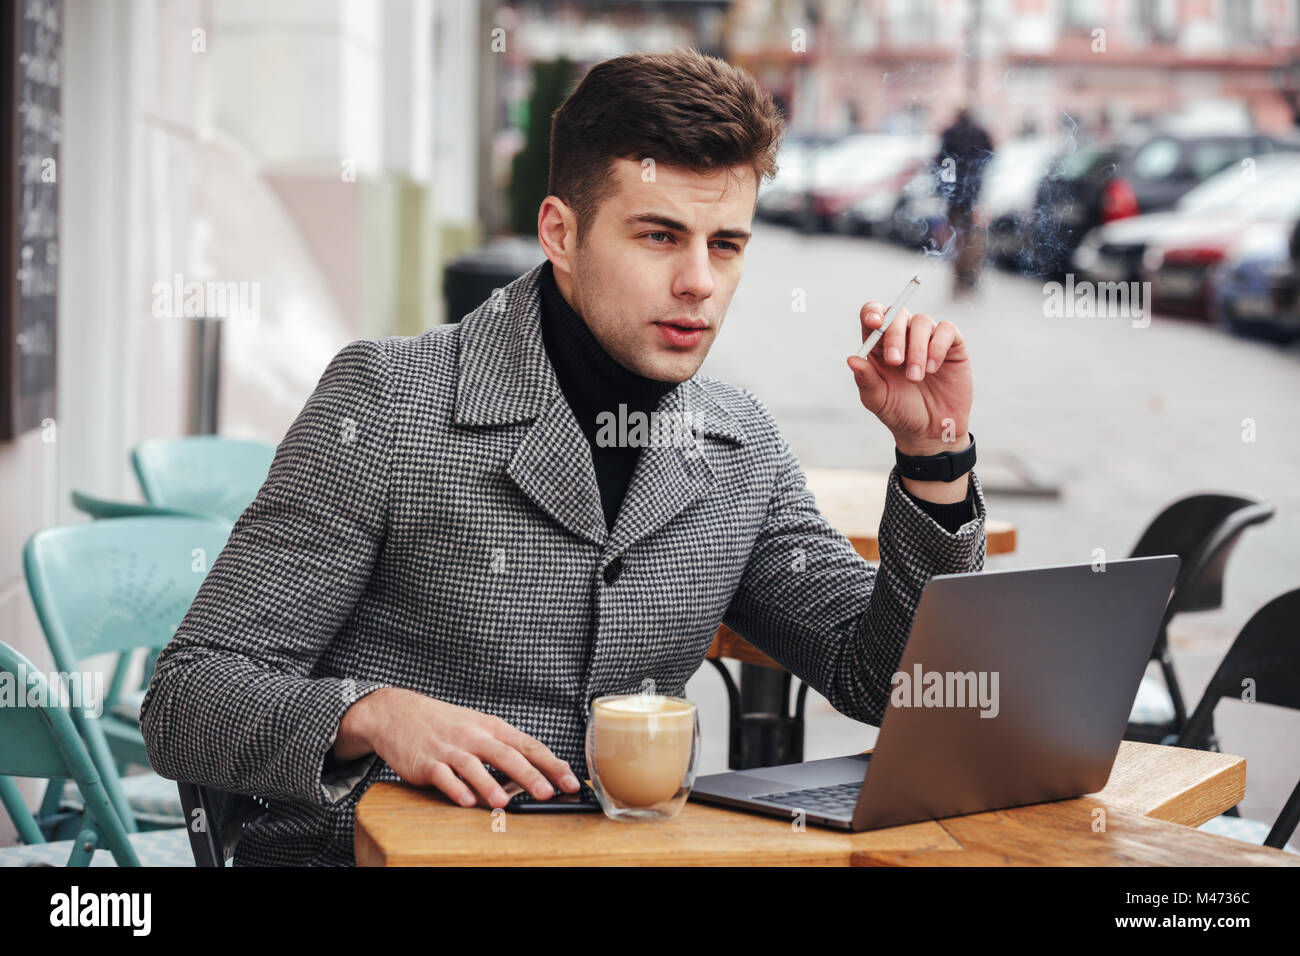 Photo of elegant businessman with brooding look sitting in cafe outside smoking cigarette and drinking cappuccino Stock Photo